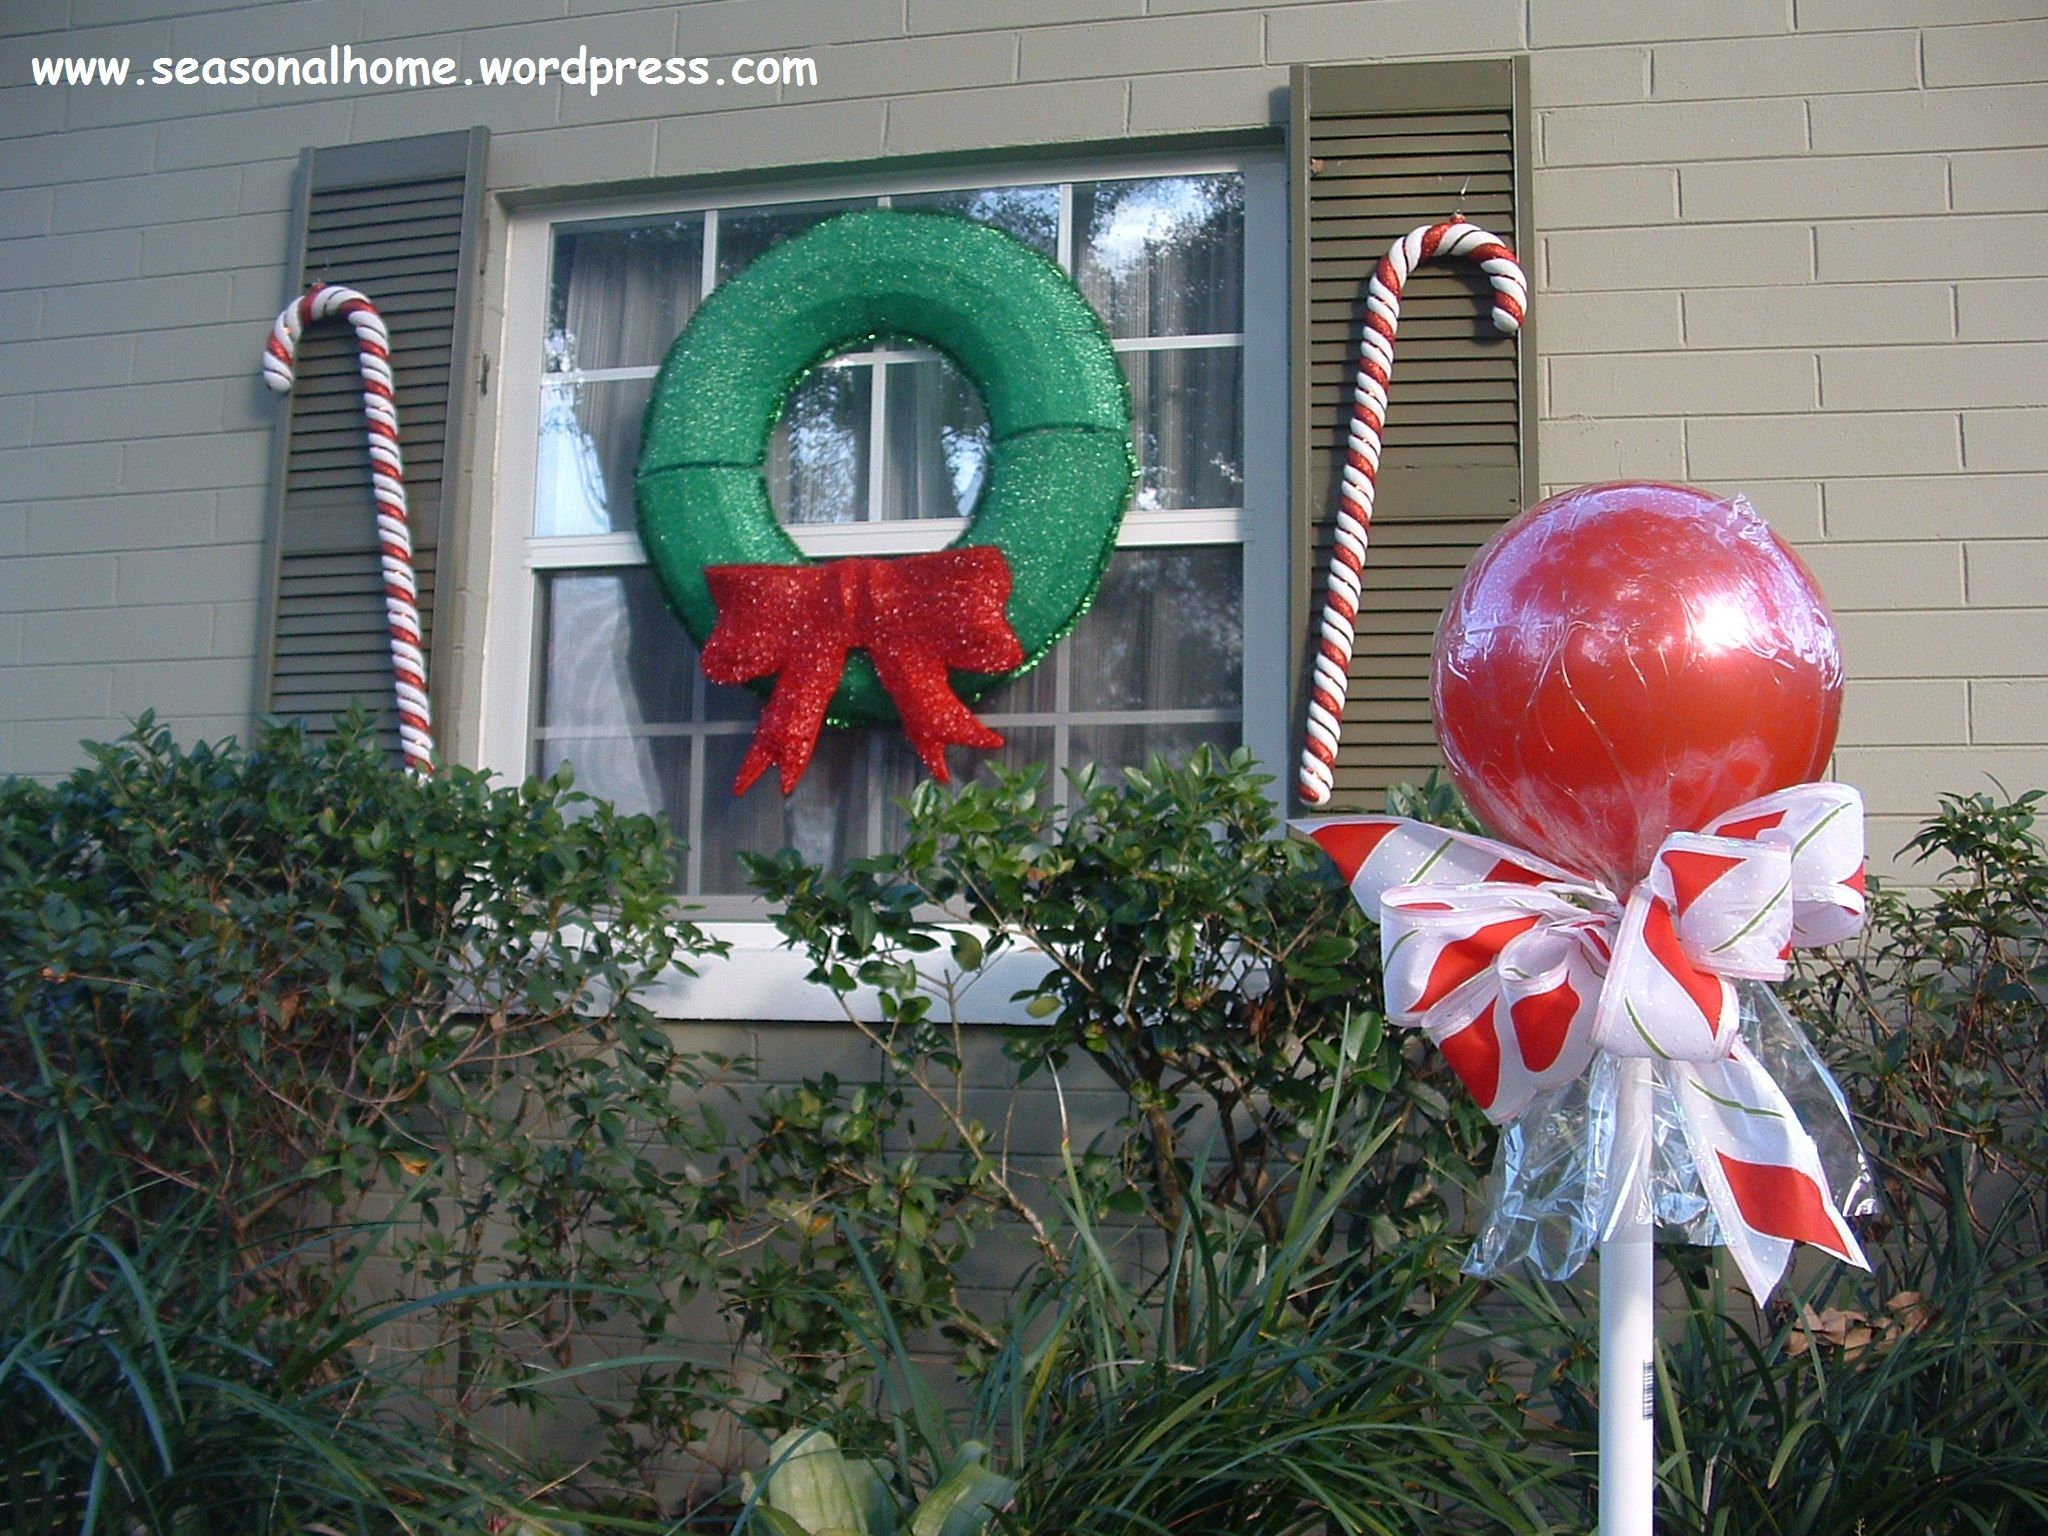 Giant outdoor lighted ornaments - Large Hollow Plastic Balls Michael S Or Rubber Play Balls In Red And Green